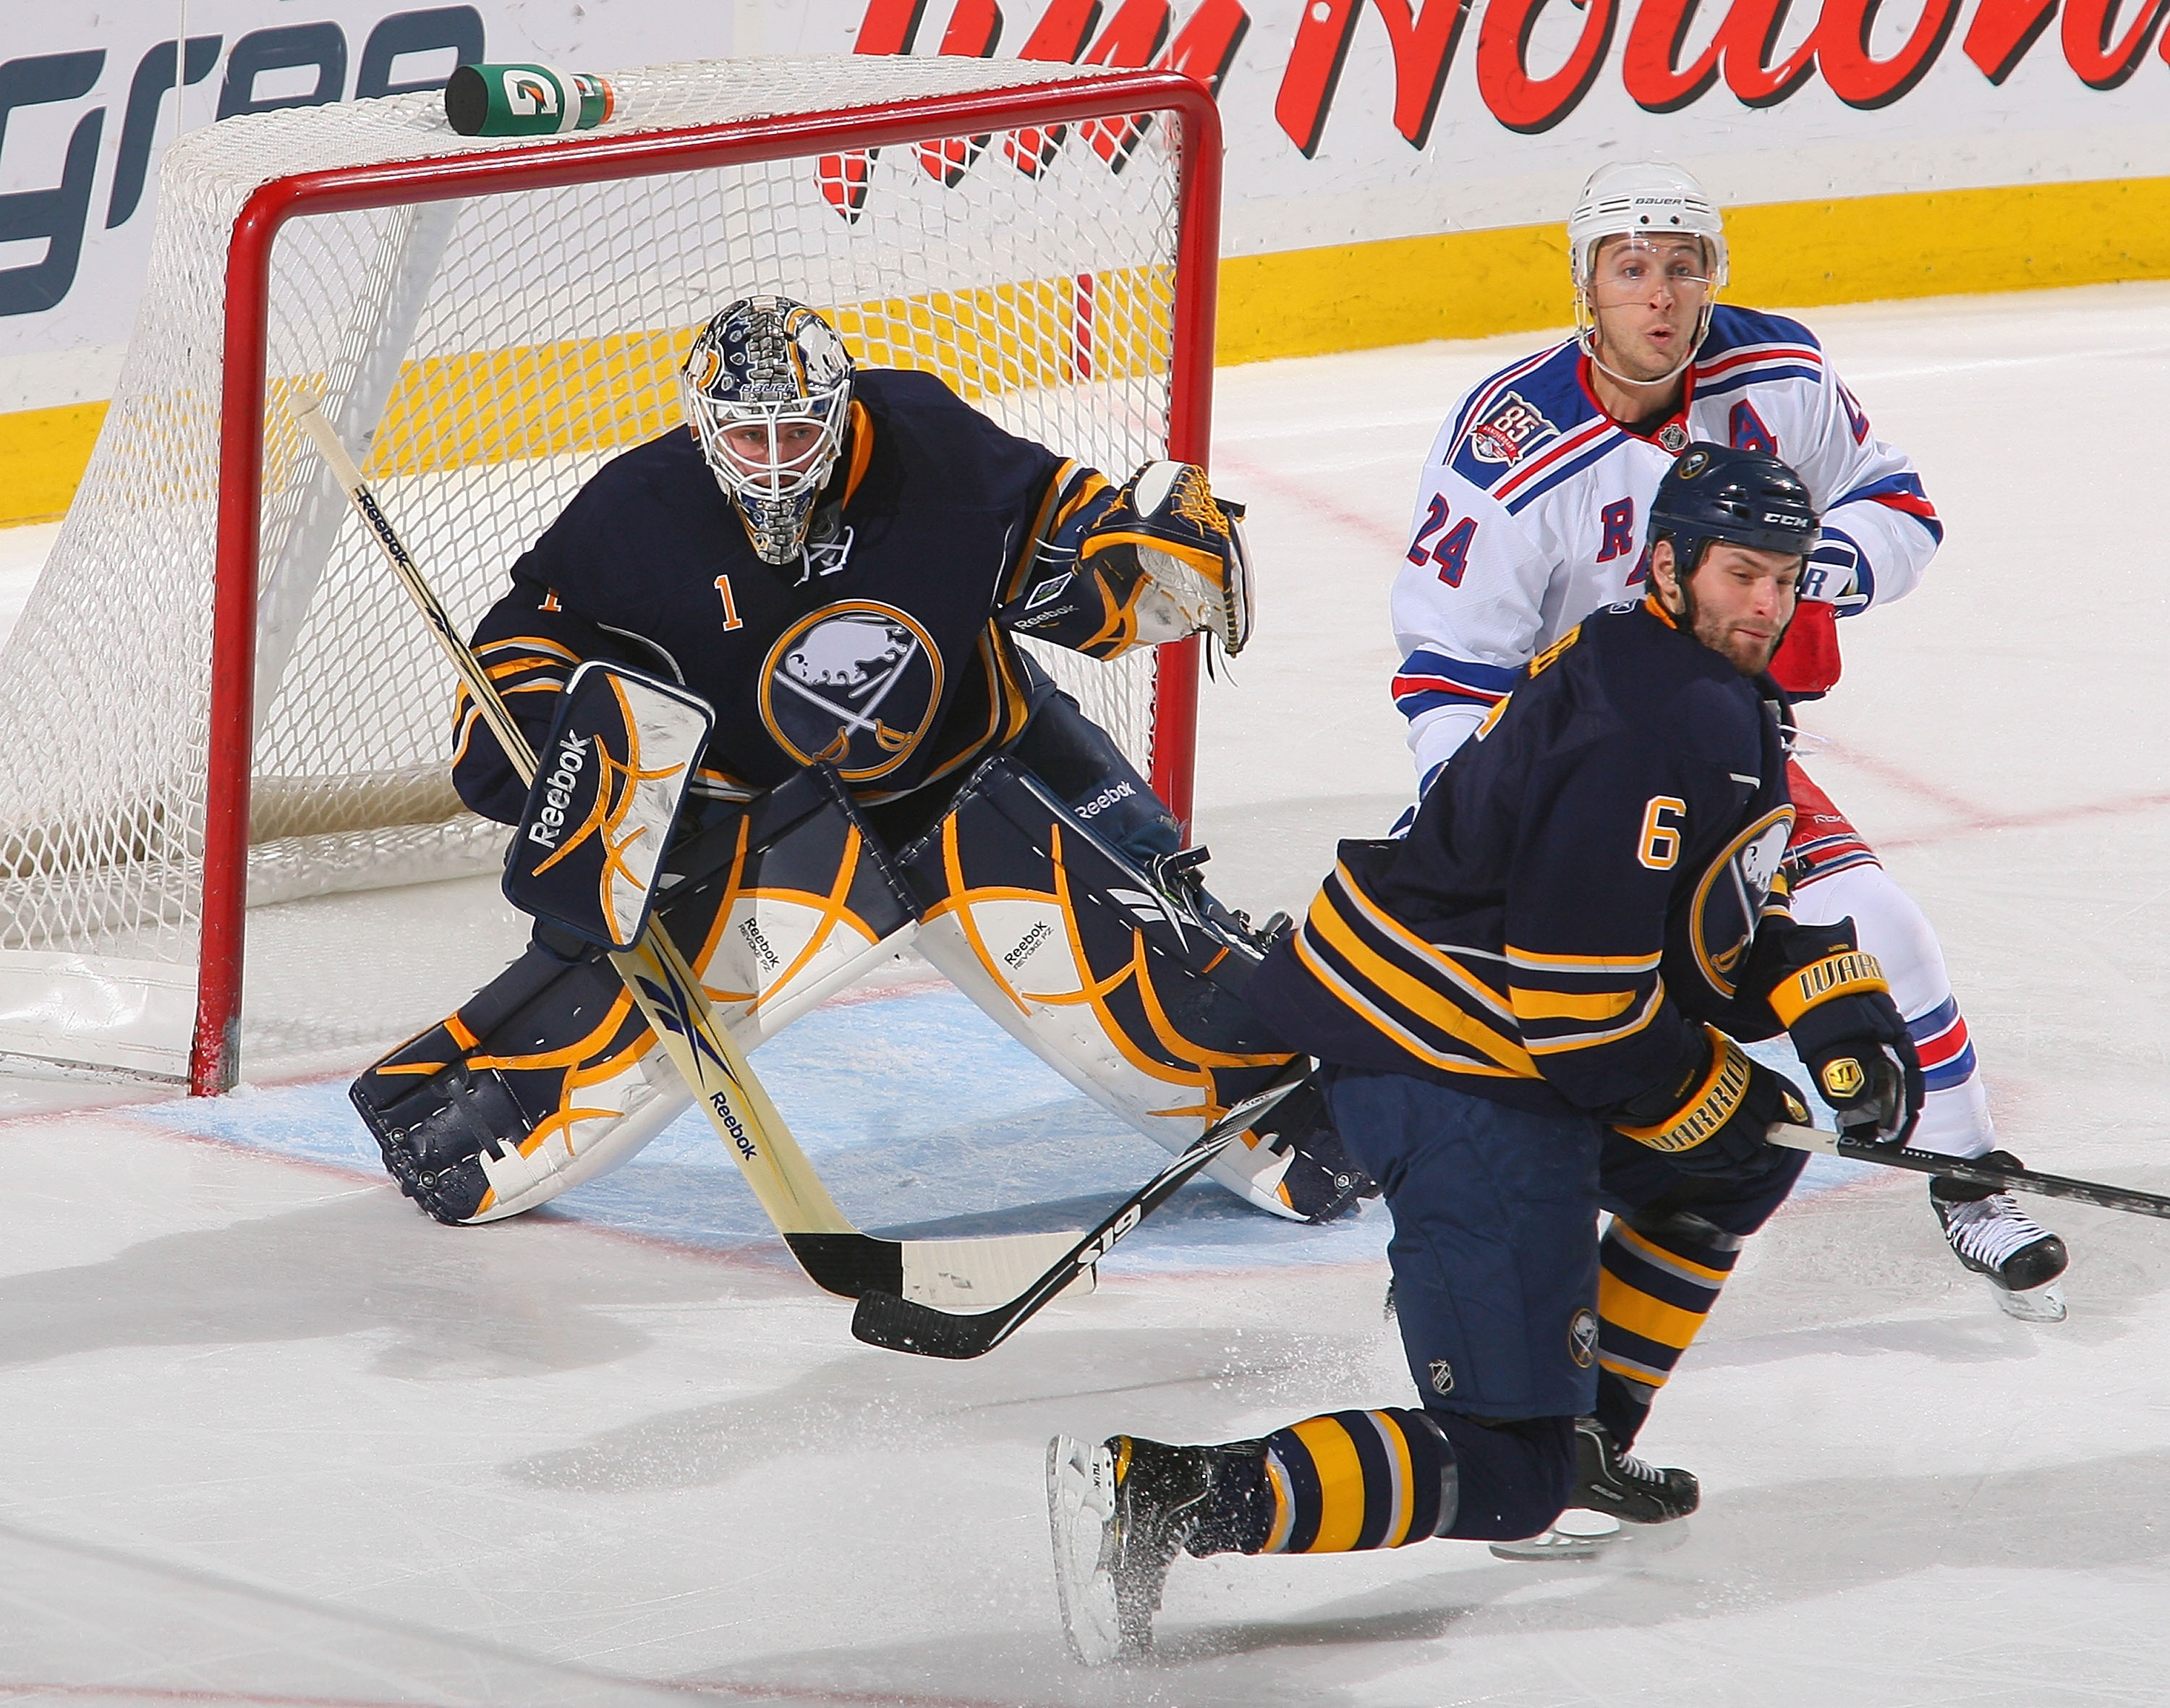 BUFFALO, NY - MARCH 30: Jhonas Enroth #1 and Mike Weber #6  of the Buffalo Sabres defend against Ryan Callahan #24 of the New York Rangers at HSBC Arena on March 30, 2011 in Buffalo, New York.  (Photo by Rick Stewart/Getty Images)